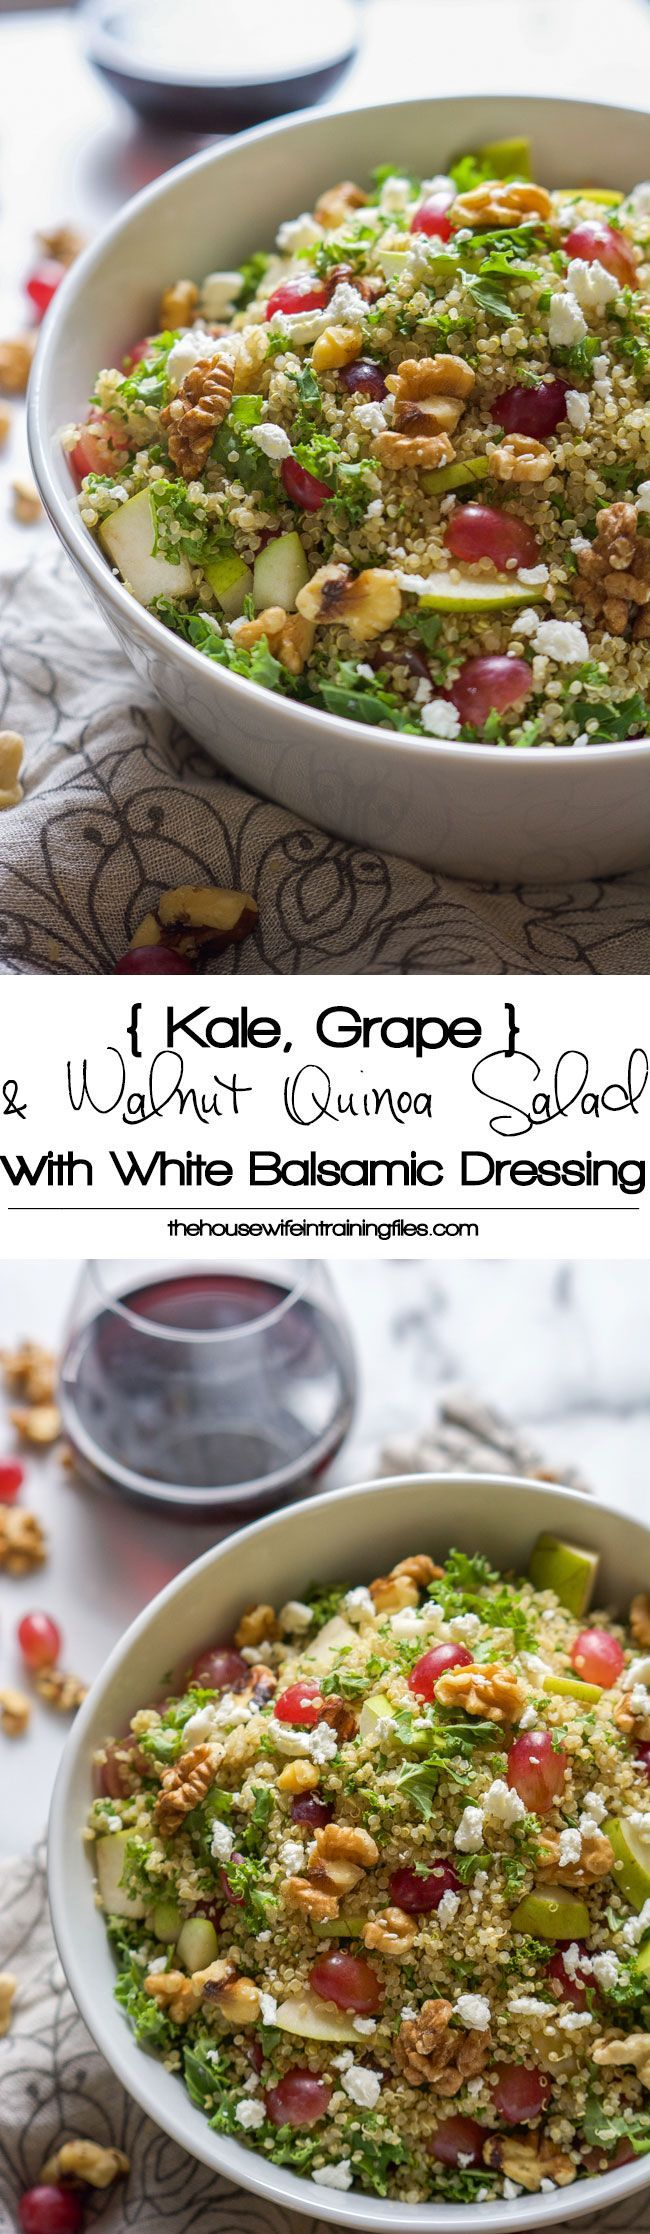 Walnut, Grape & Kale Quinoa Salad with White Balsamic Dressing is a salad that is perfect to make ahead and is filled with sweet, savory, nutty grains and greens to keep you healthy and full!: